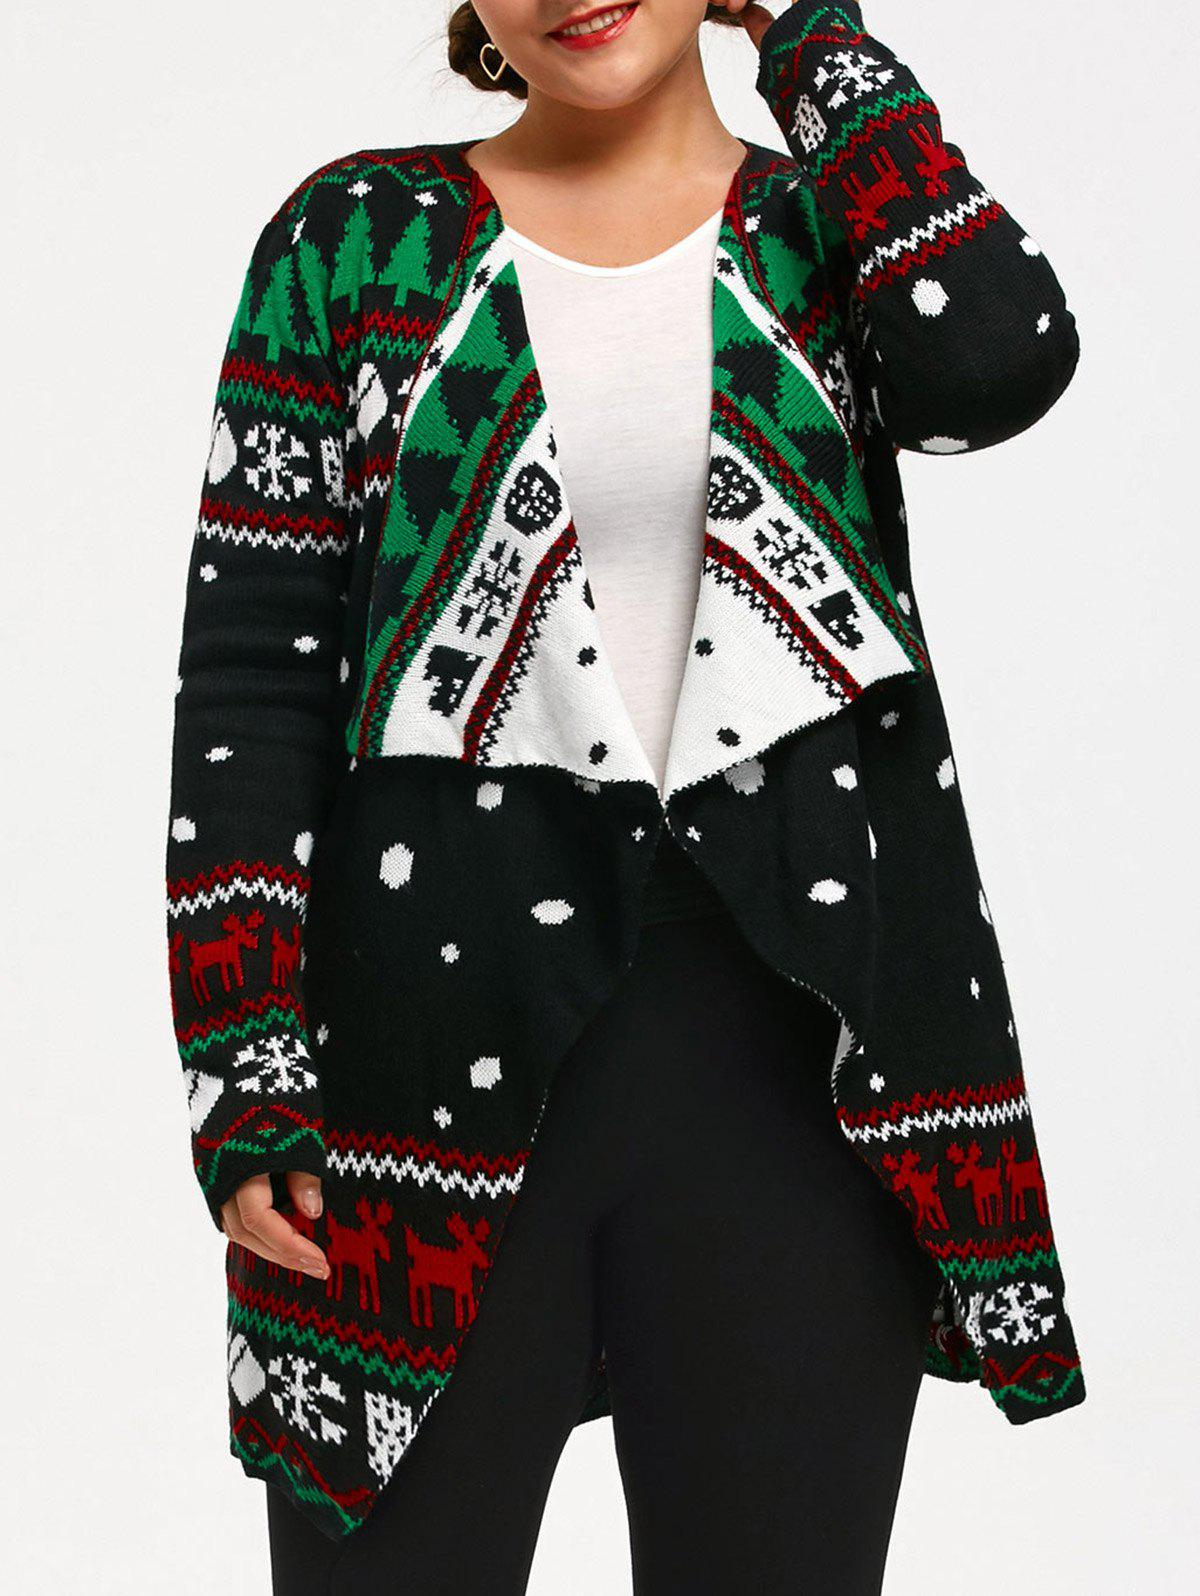 Christmas Pattern Plus Size Tunic Knitted CardiganWOMEN<br><br>Size: XL; Color: COLORMIX; Type: Cardigans; Material: Acrylic,Polyester; Sleeve Length: Full; Collar: Collarless; Style: Fashion; Season: Fall,Spring,Winter; Pattern Type: Others; Weight: 0.6700kg; Package Contents: 1 x Cardigan;